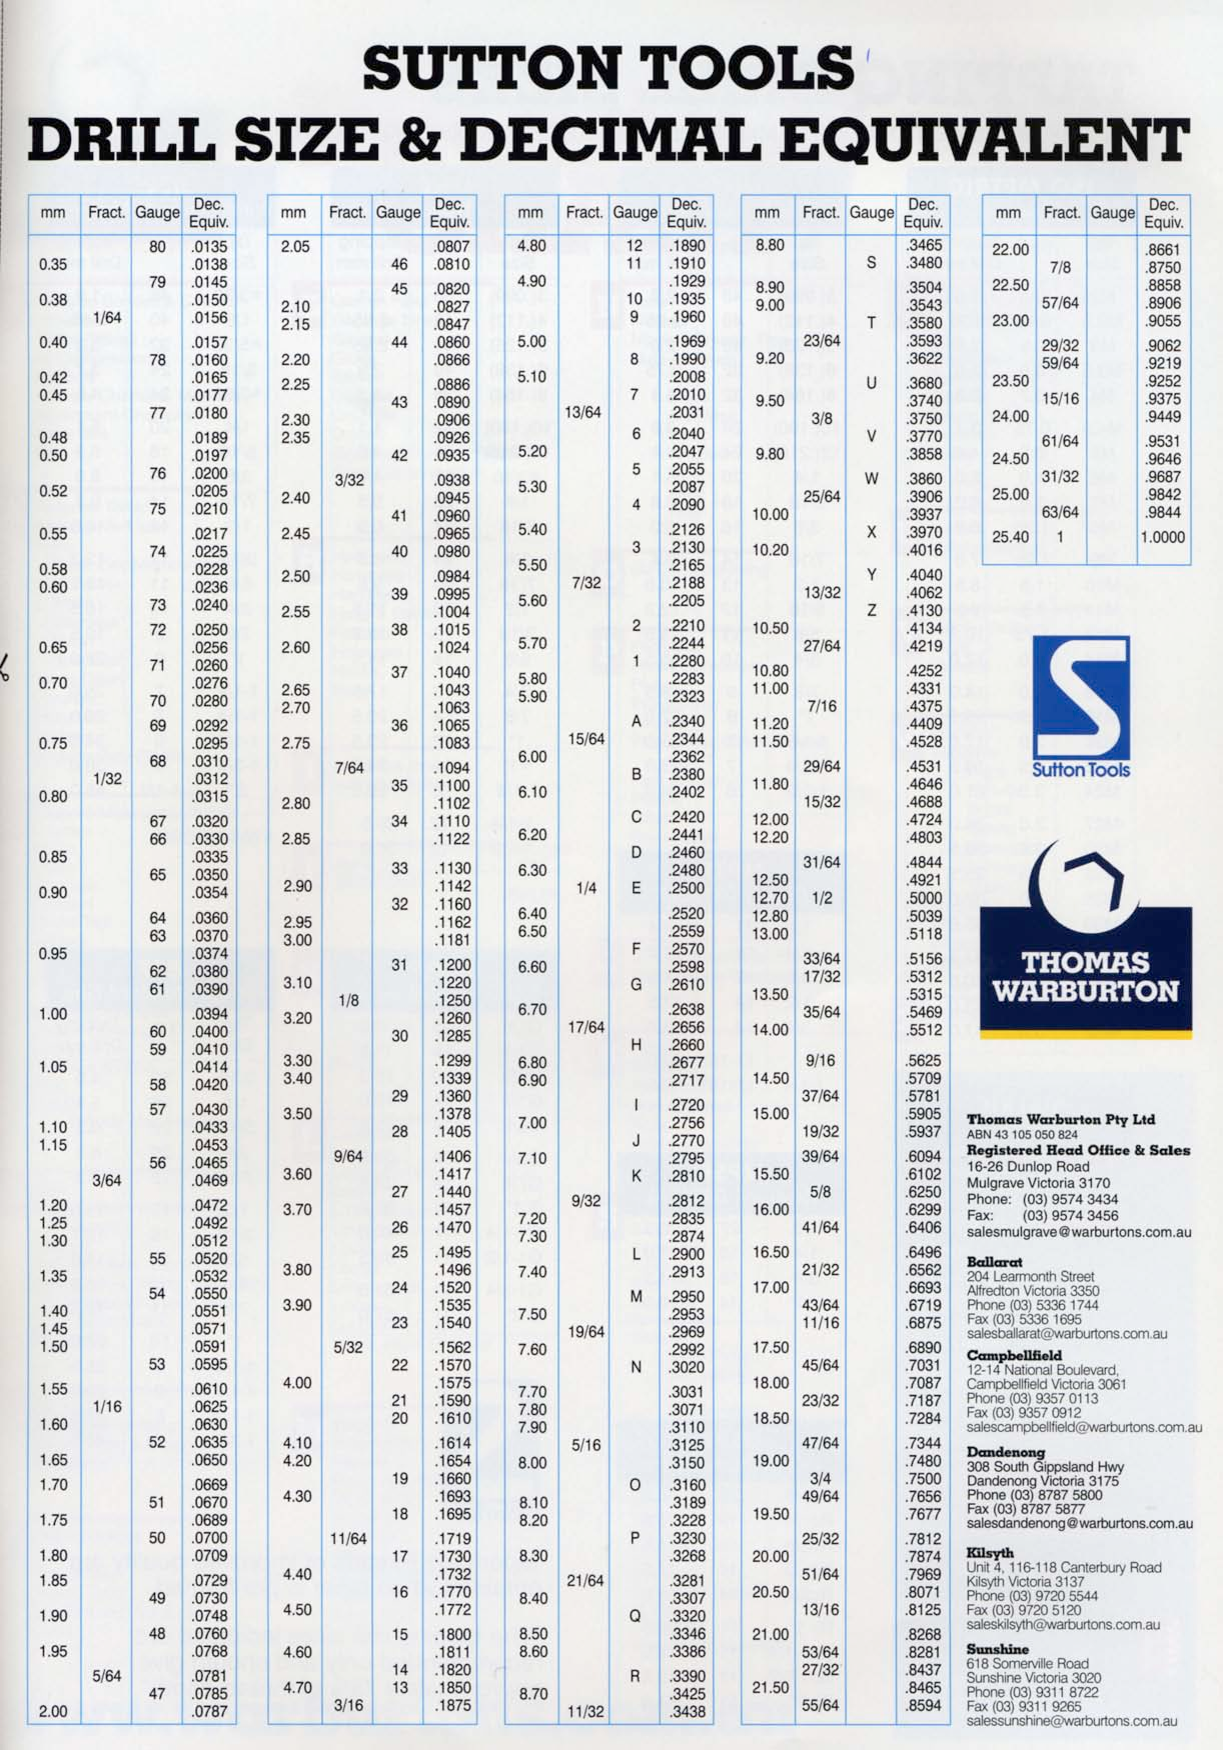 photograph about Printable Decimal Equivalent Chart identify Decimal towards Portion Drill Chart SUTTON Instruments DRILL Dimensions